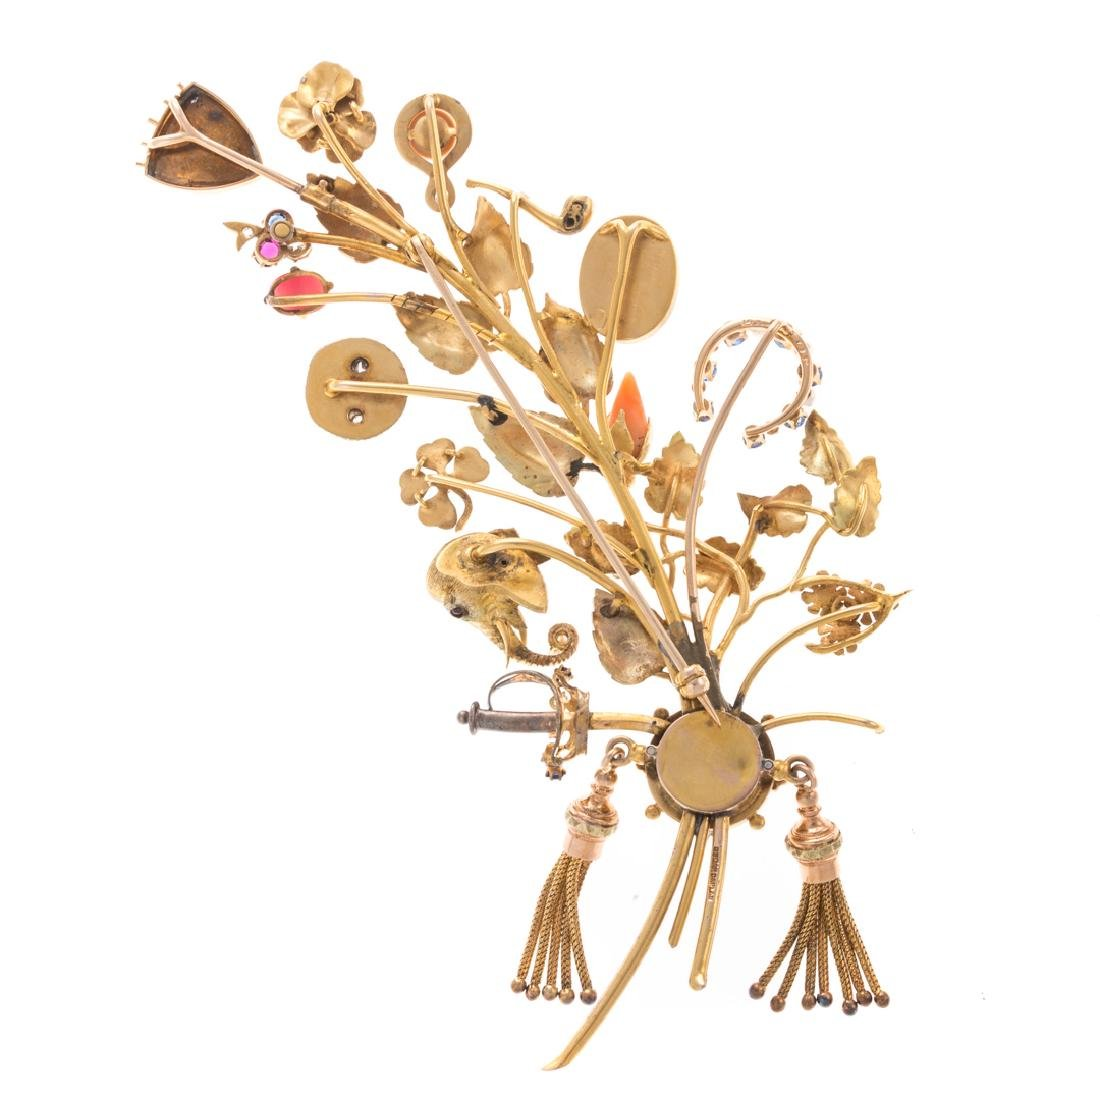 A Lady's Leaf Stick Pin Brooch by Oscar Caplan - 5